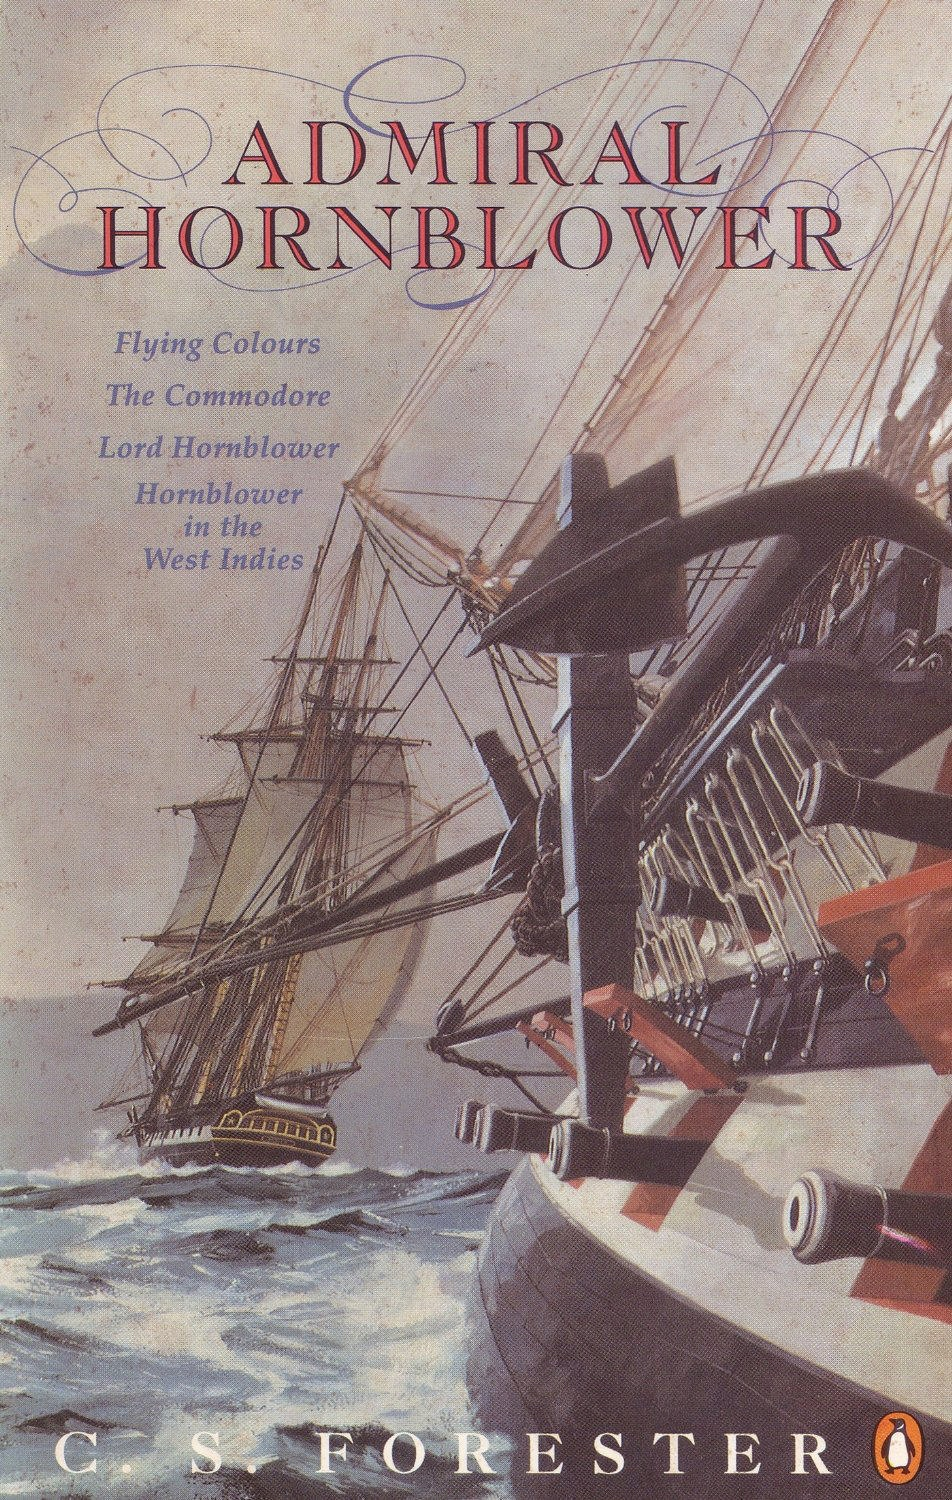 Admiral Hornblower: Contains; Flying Colours, Commodore: Lord Hornblowe er, Hornblower in the West Indies